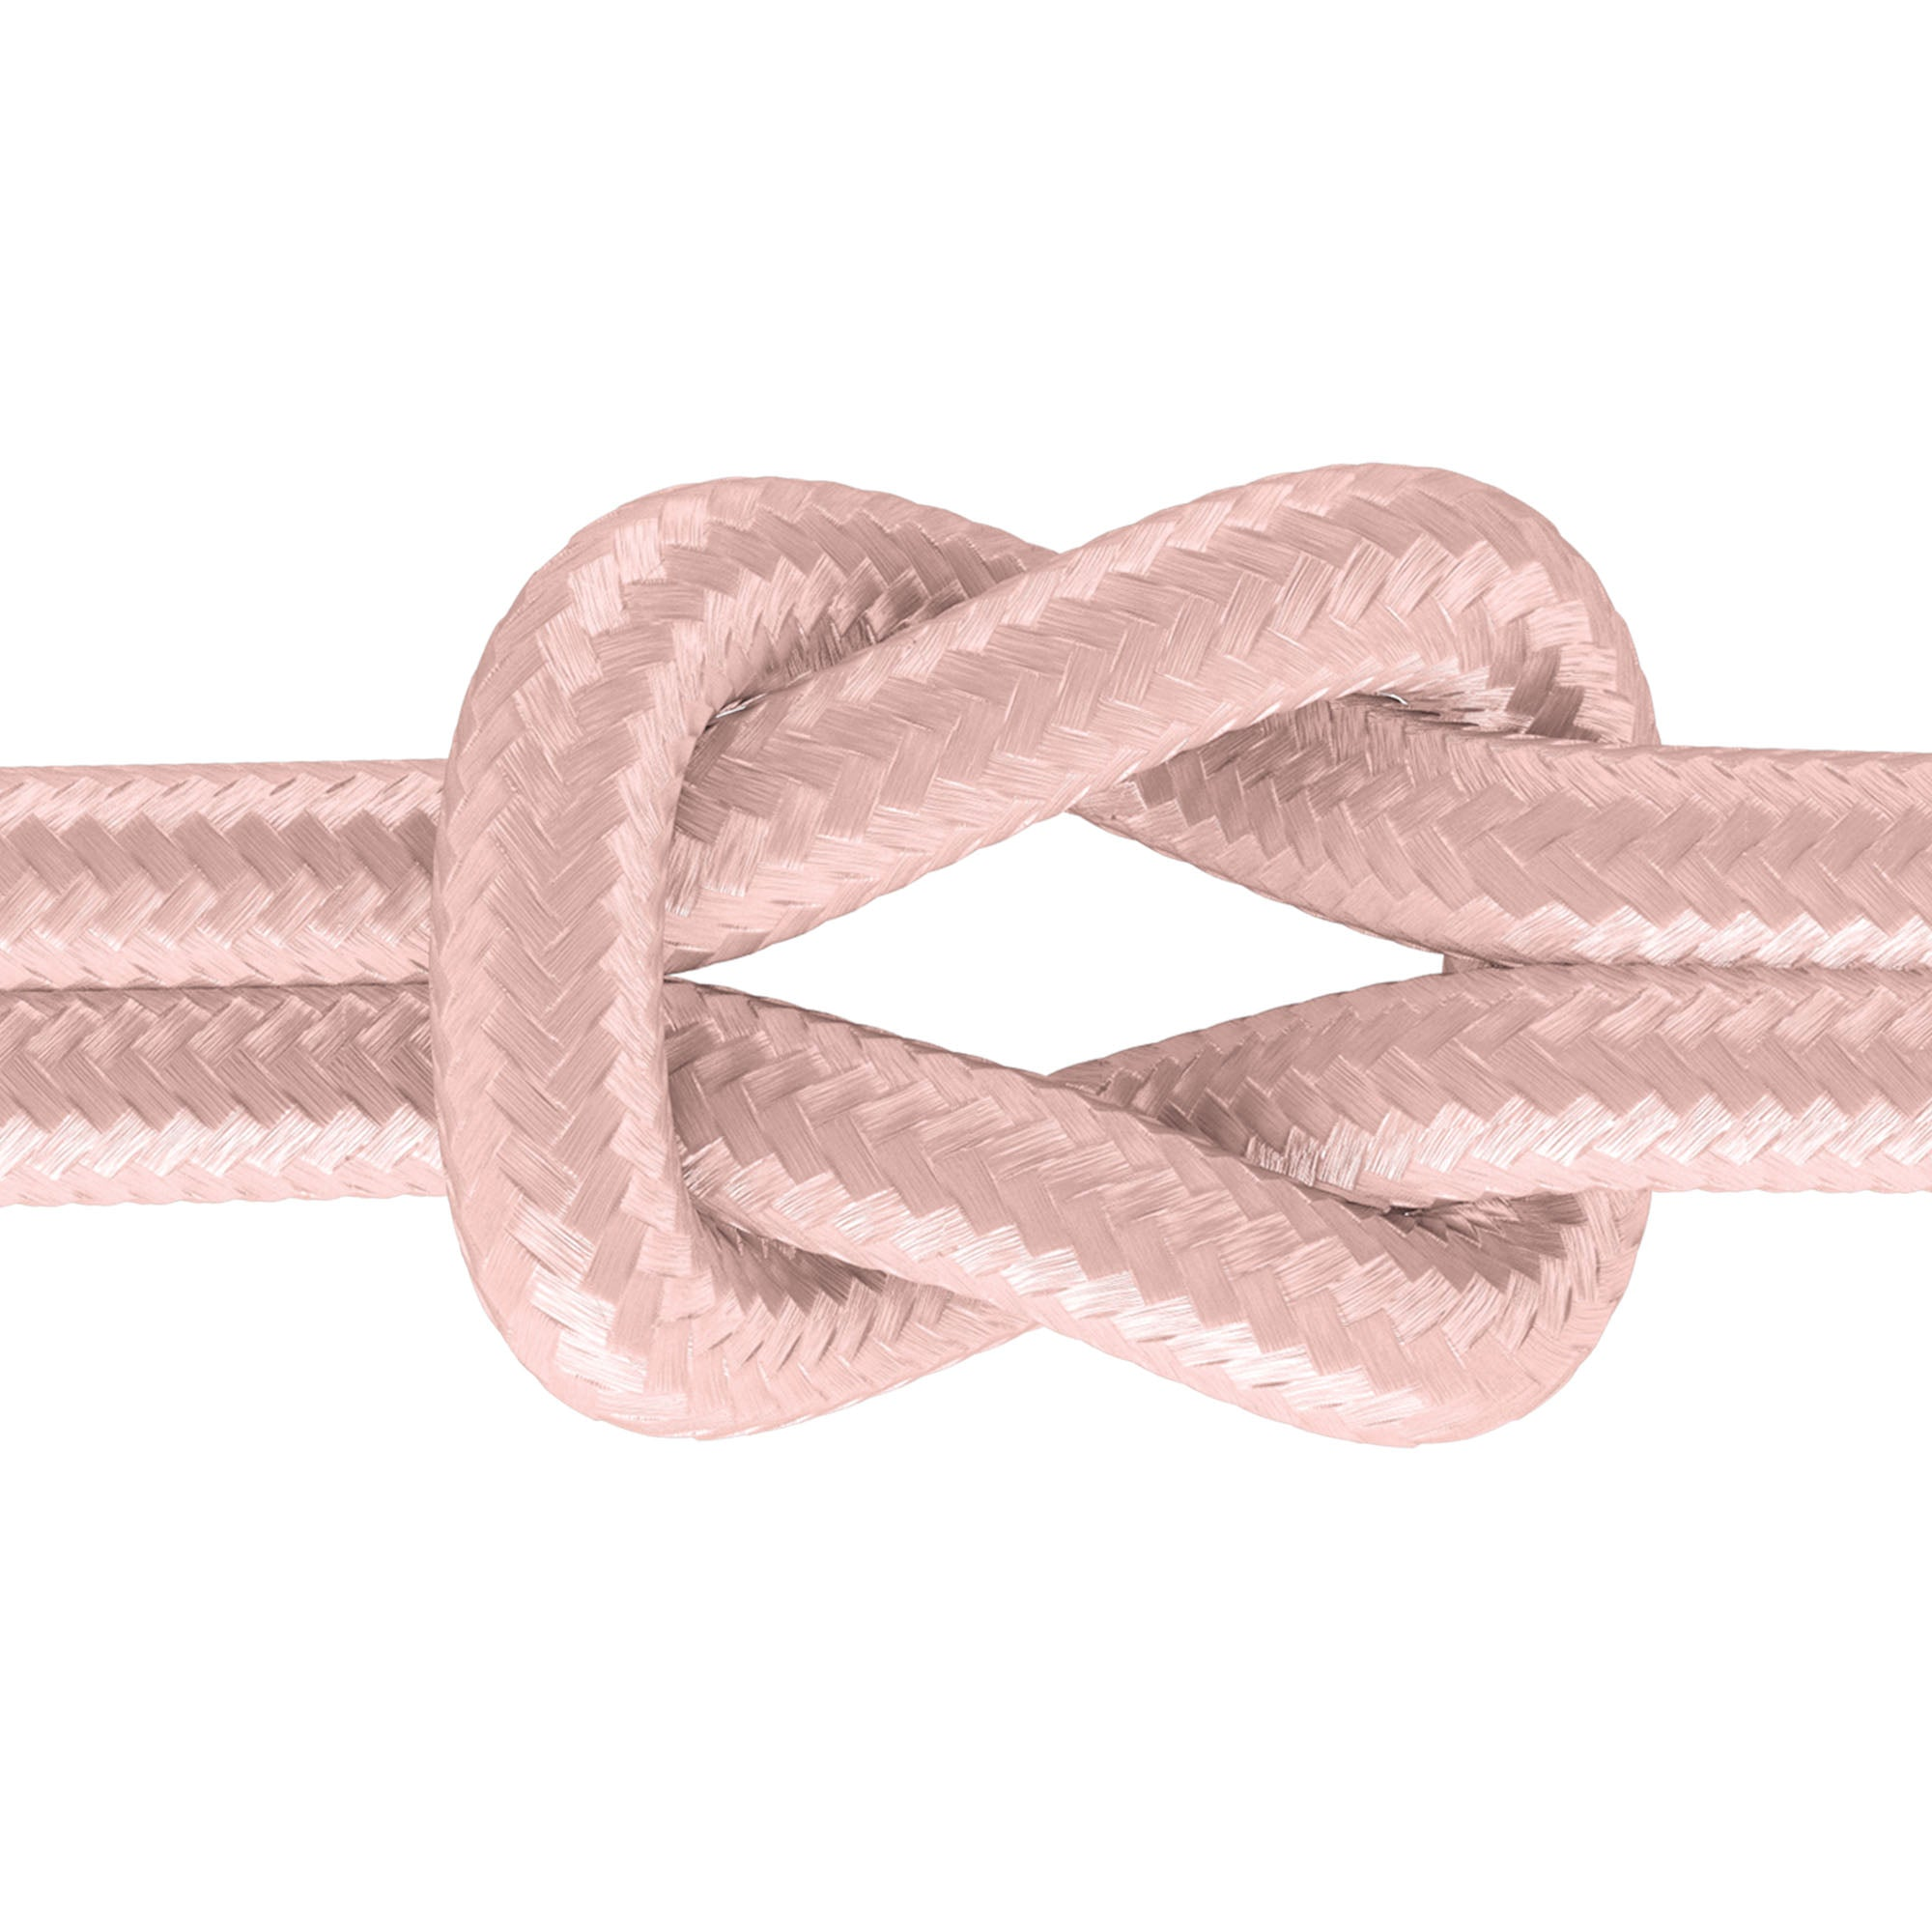 6ft Kevlar USB-C Nylon Braided Cable - Rose Gold